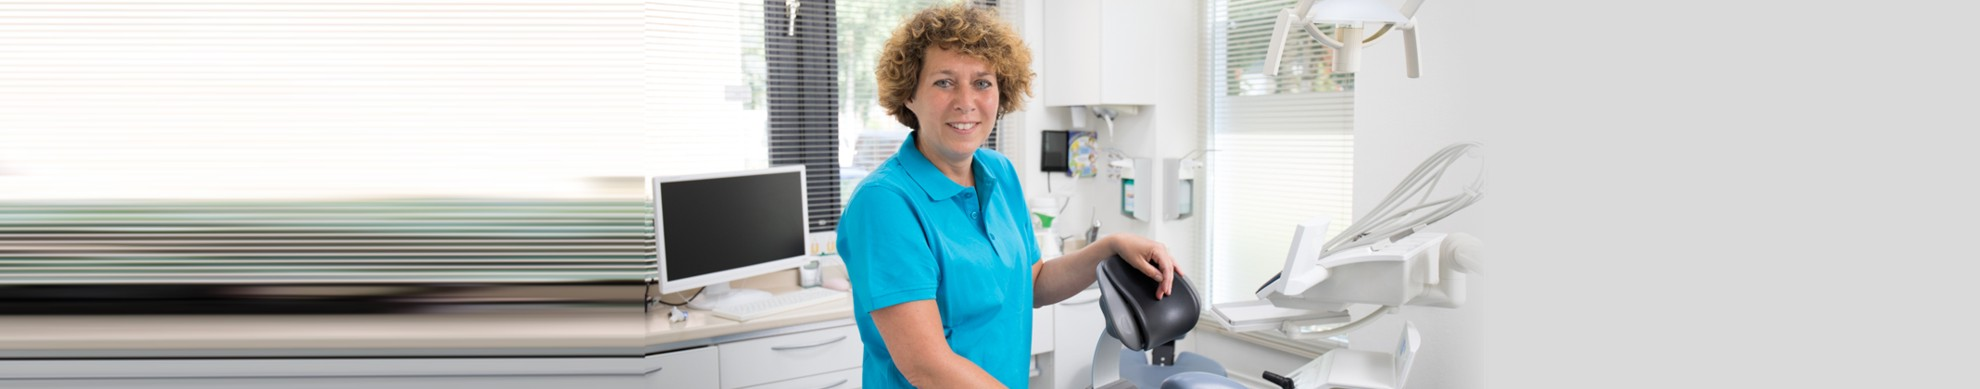 Monique Willering Mondhygieniste in Almere